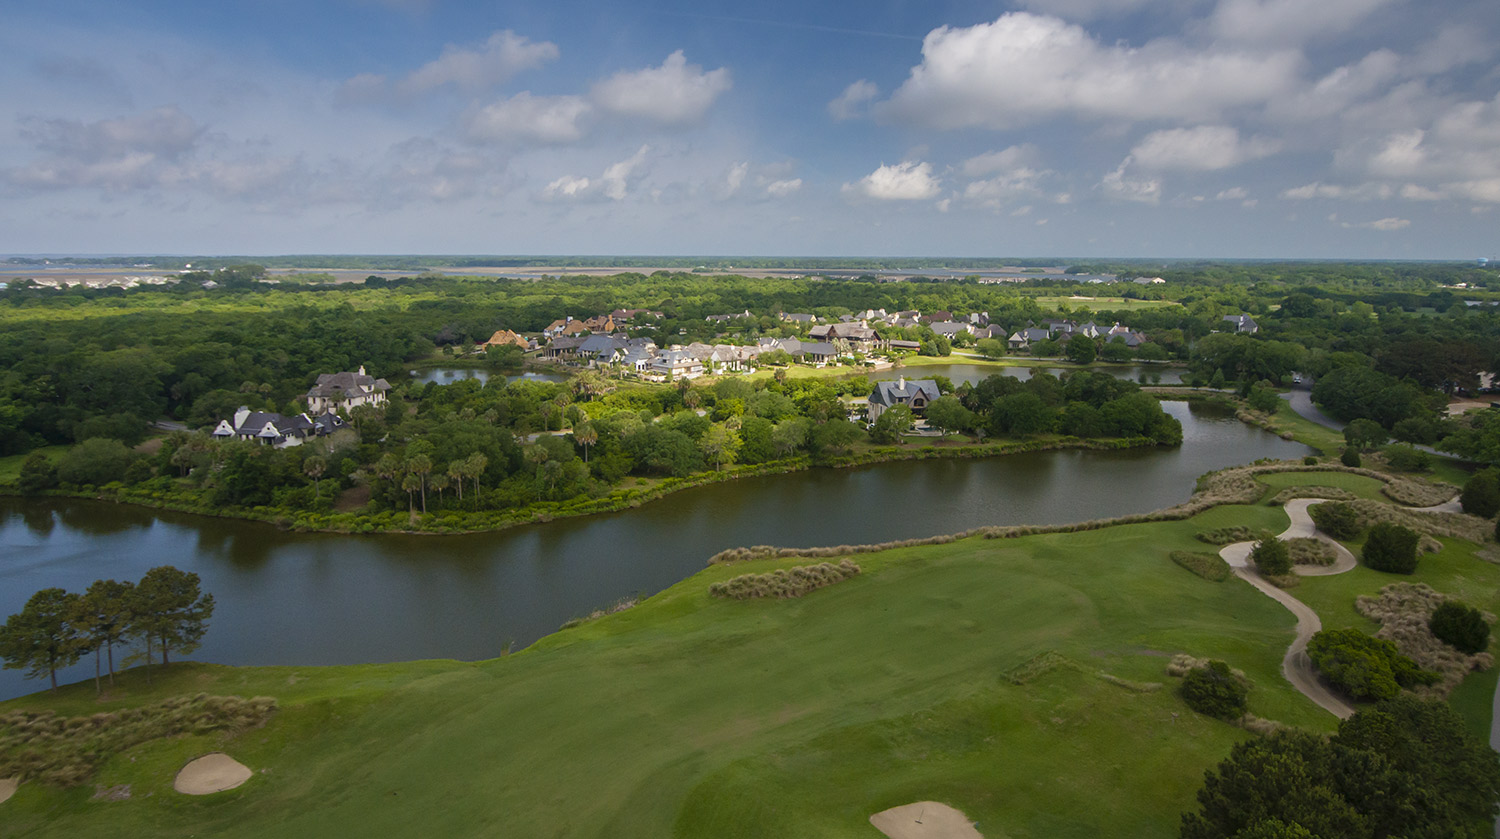 Aerial image of Cassique Garden Cottages and Sports Pavilion on Kiawah Island, SC